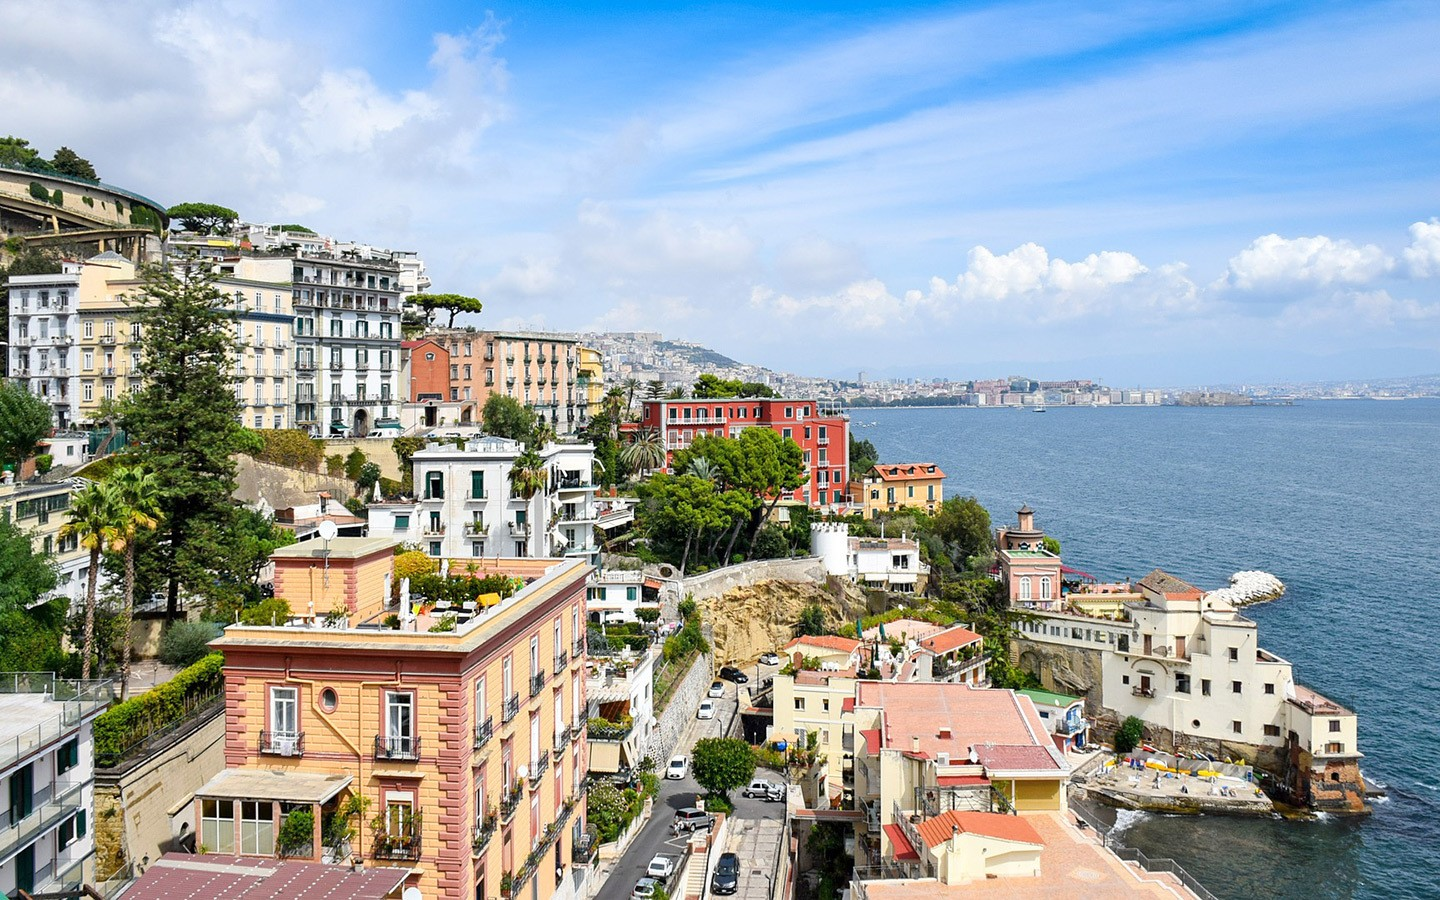 The colourful coastal city of Naples in Southern Italy